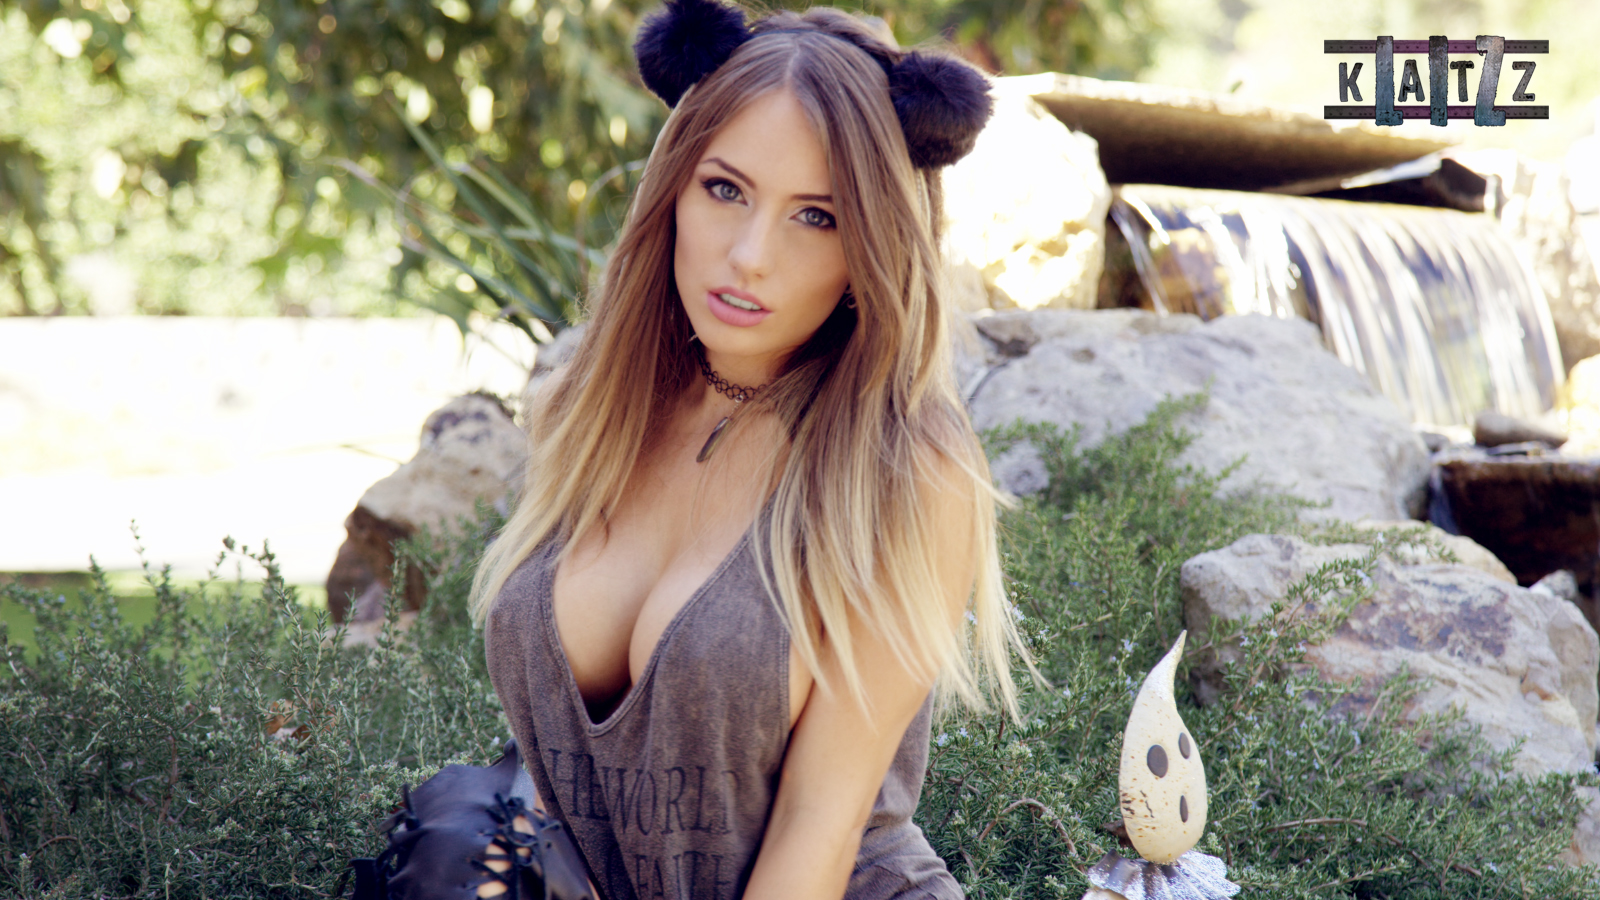 Liz Katz is Back with New Pom-Poms